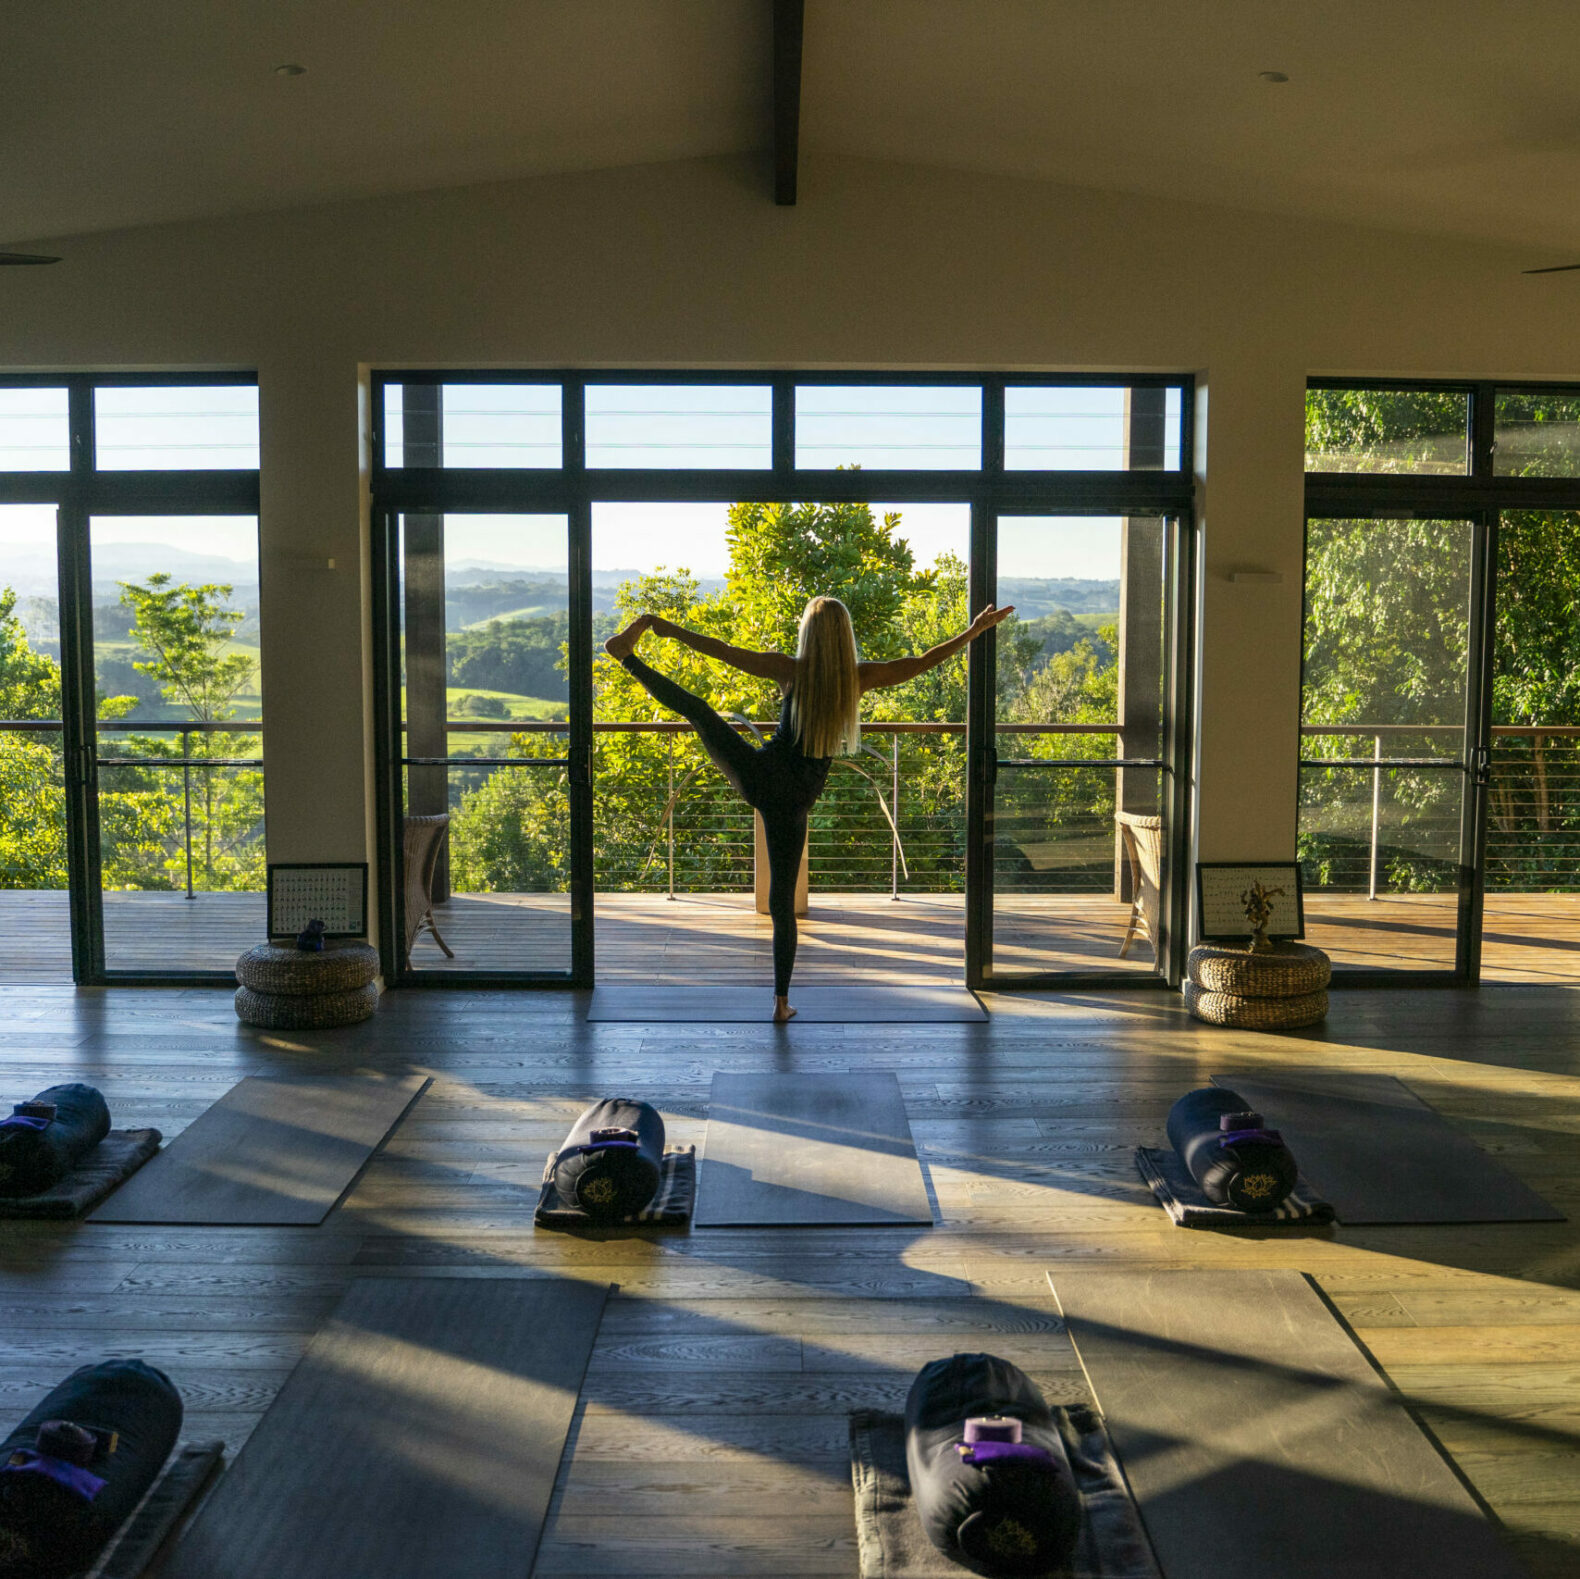 light-samadhi-yoga-room-gaia-retreat-spa-healing-hotel-australia